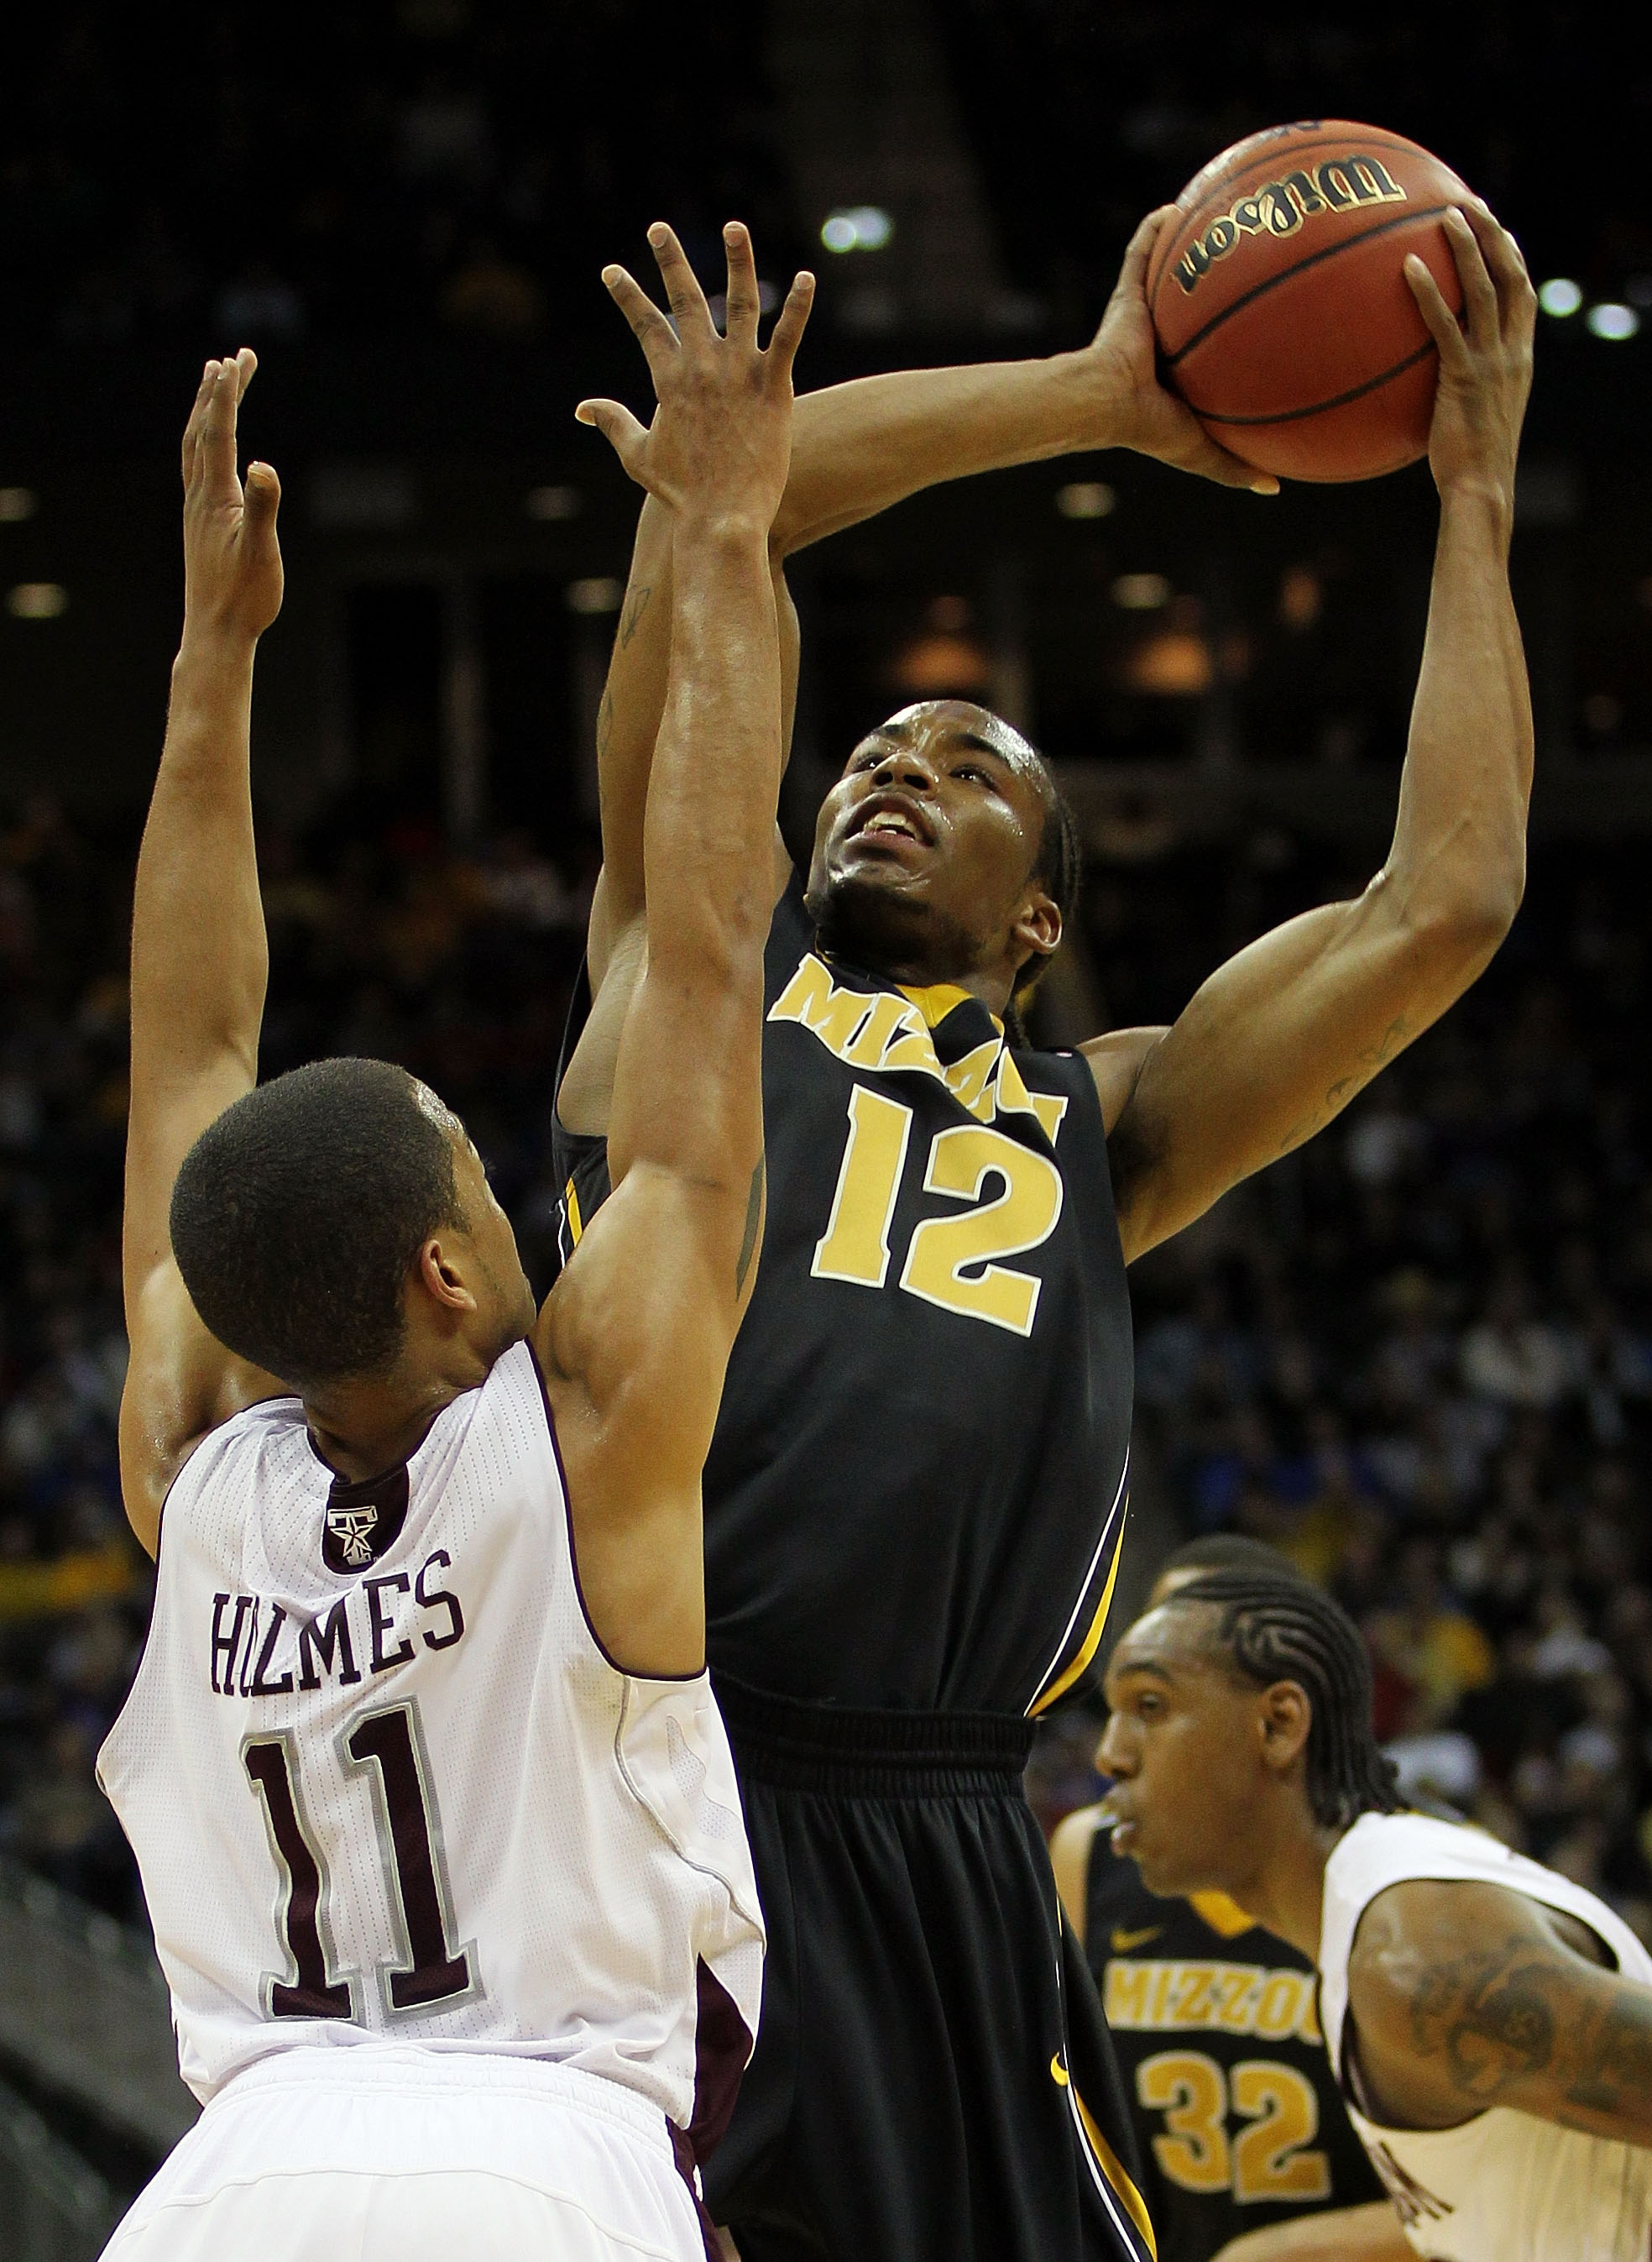 KANSAS CITY, MO - MARCH 10:  Marcus Denmon #12 of the Missouri Tigers goes up for a shot against B.J. Holmes #11 of the Texas A&M Aggies during their quarterfinal game in the 2011 Phillips 66 Big 12 Men's Basketball Tournament at Sprint Center on March 10